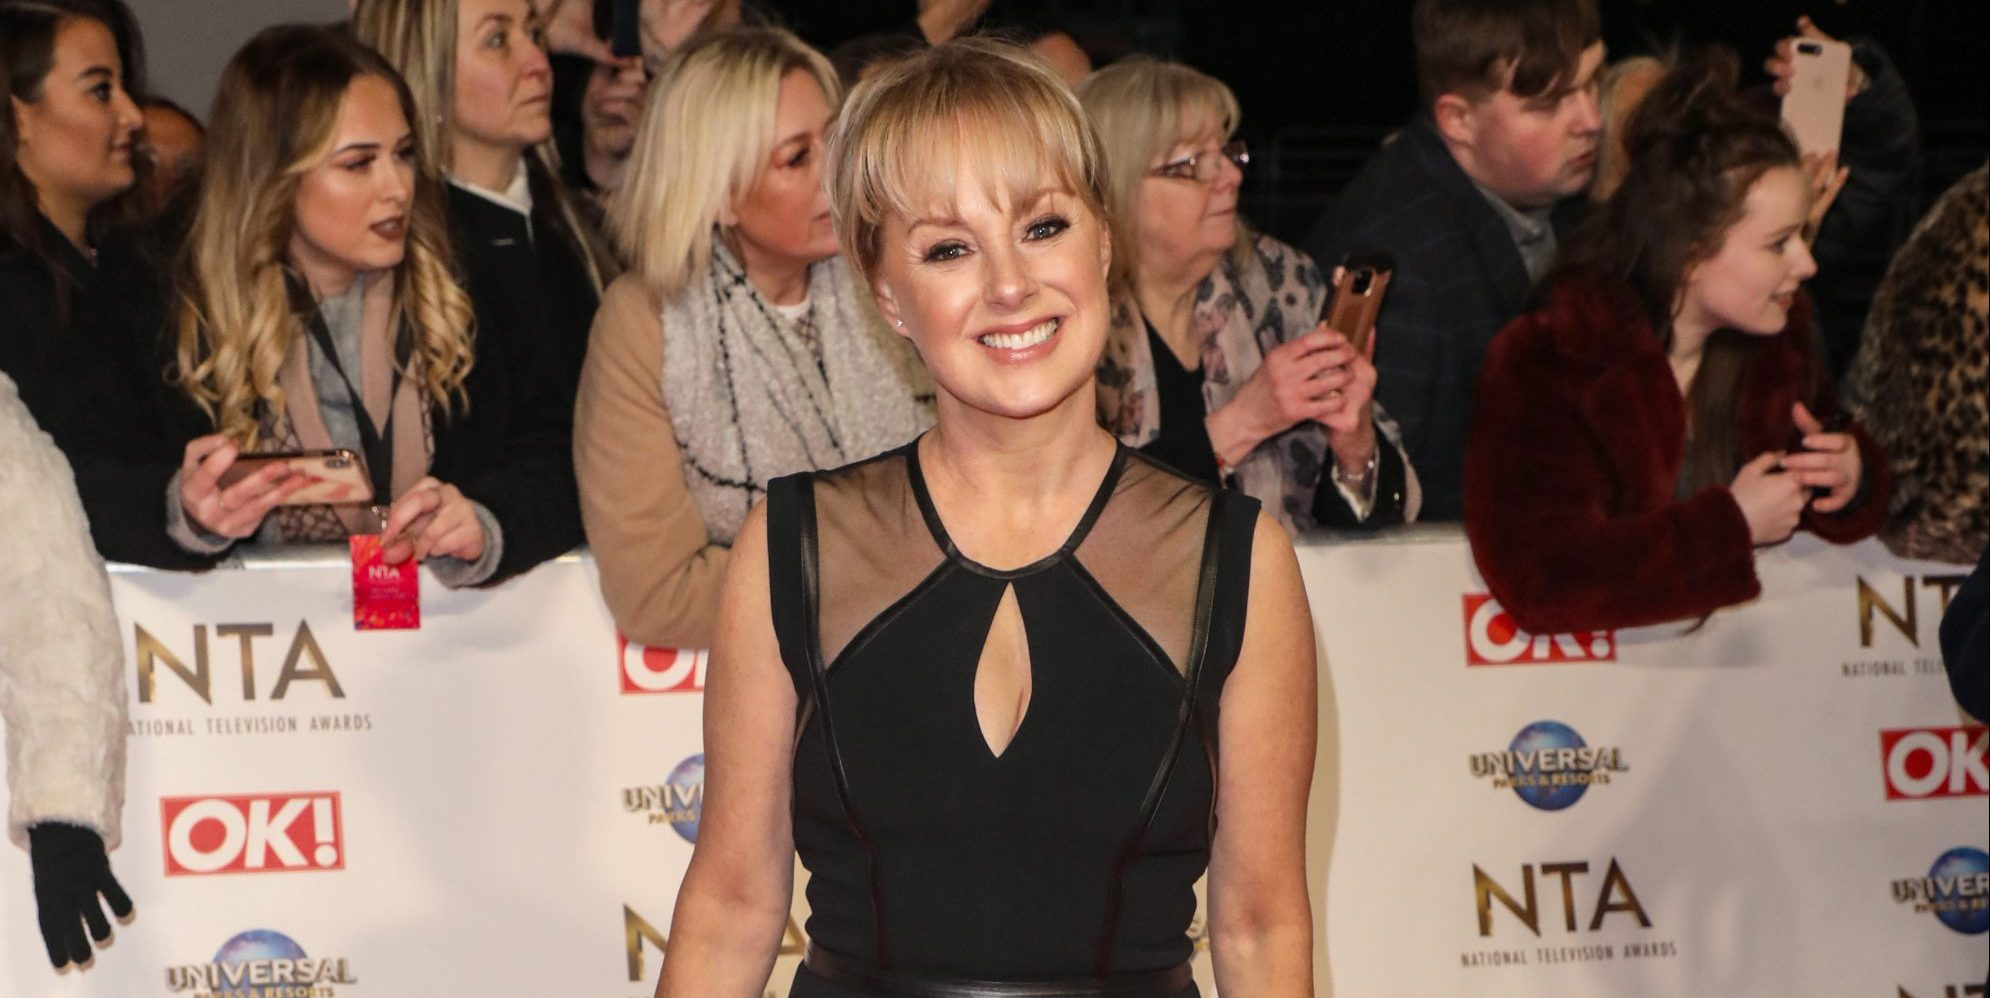 Coronation Street's Sally Dynevor shares sweet pic with soap daughters and real daughter